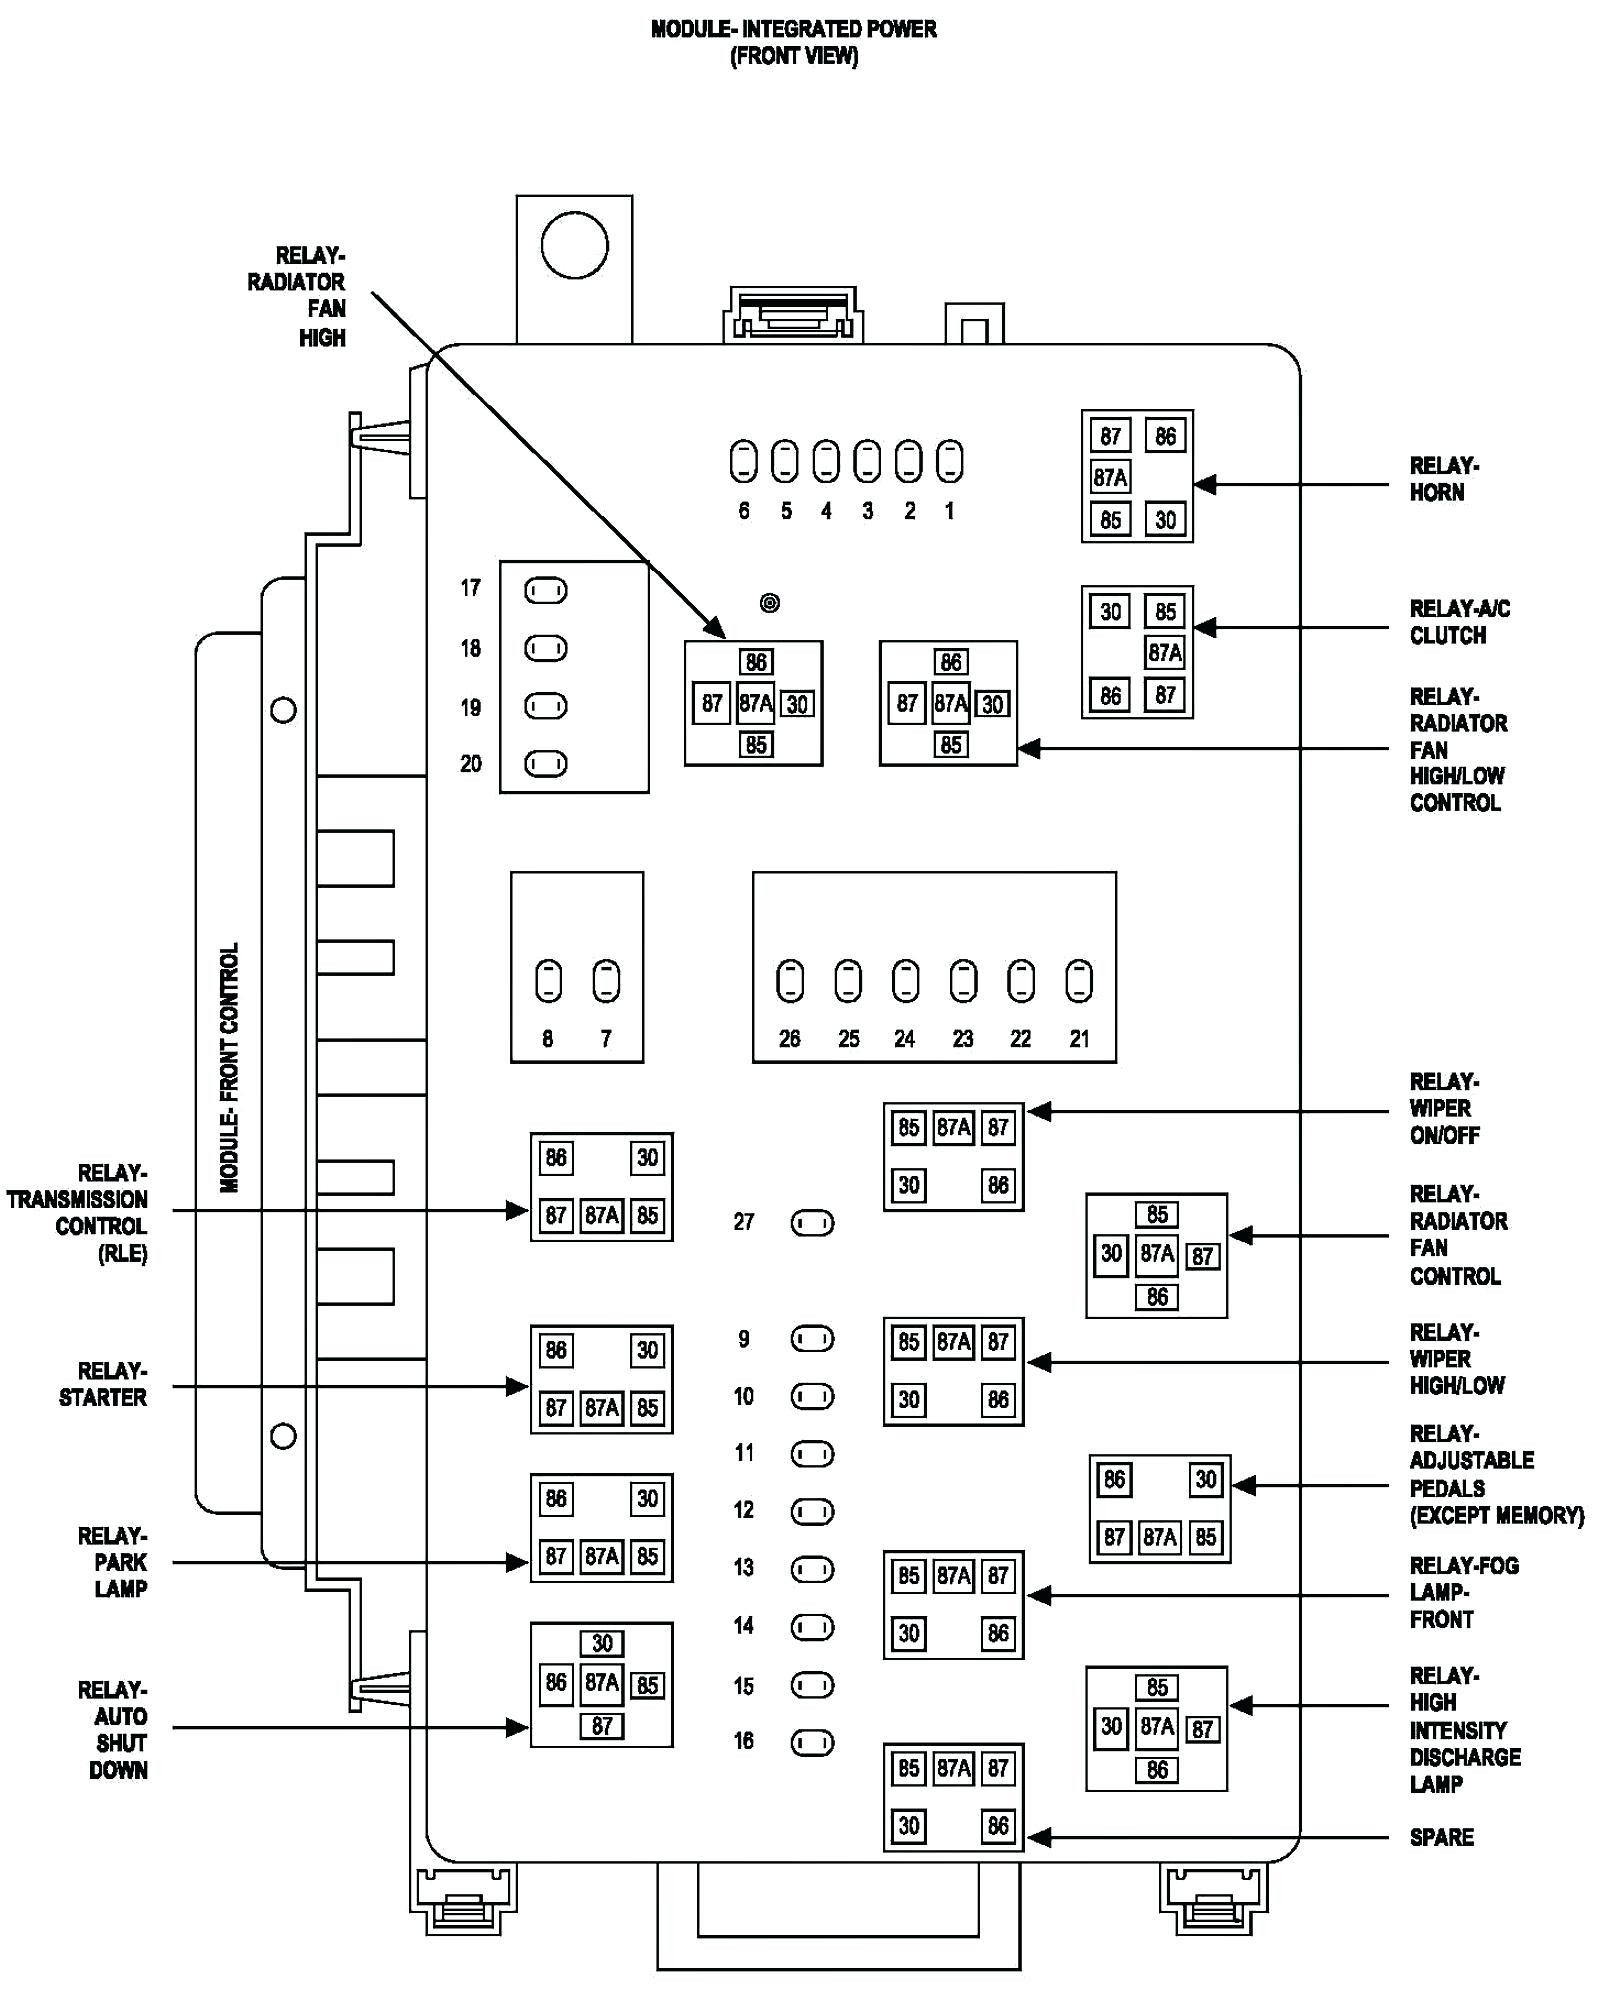 2005 magnum fuse box diagram wiring diagram data todaydodge magnum fuse box diagram wiring diagram gp 2005 magnum fuse box diagram